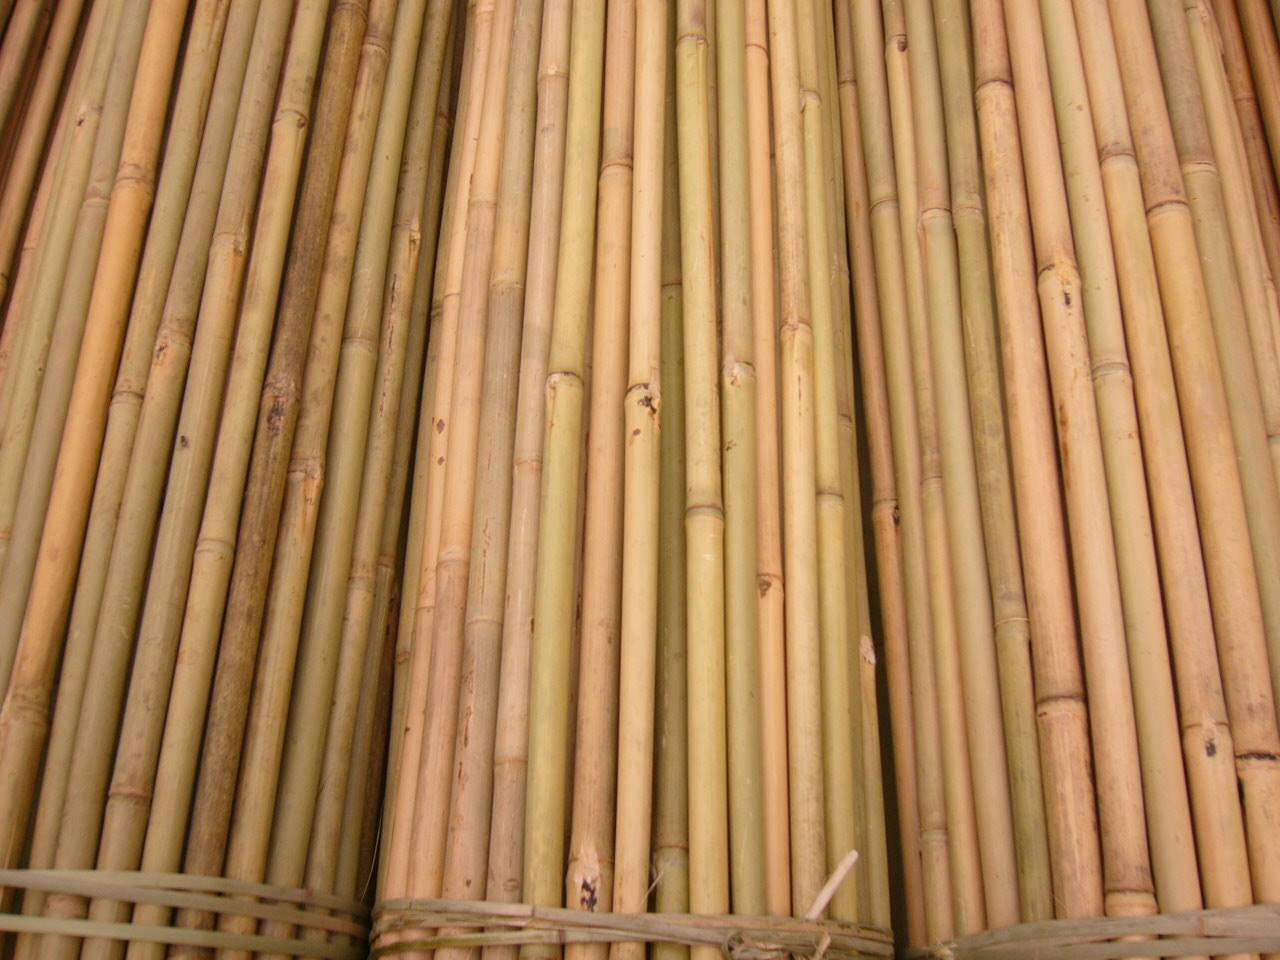 bamboo sticks Indianindustrycom largest searchable online b2b marketplace providing listings of bamboo sticks manufacturers, suppliers and exporters in india.